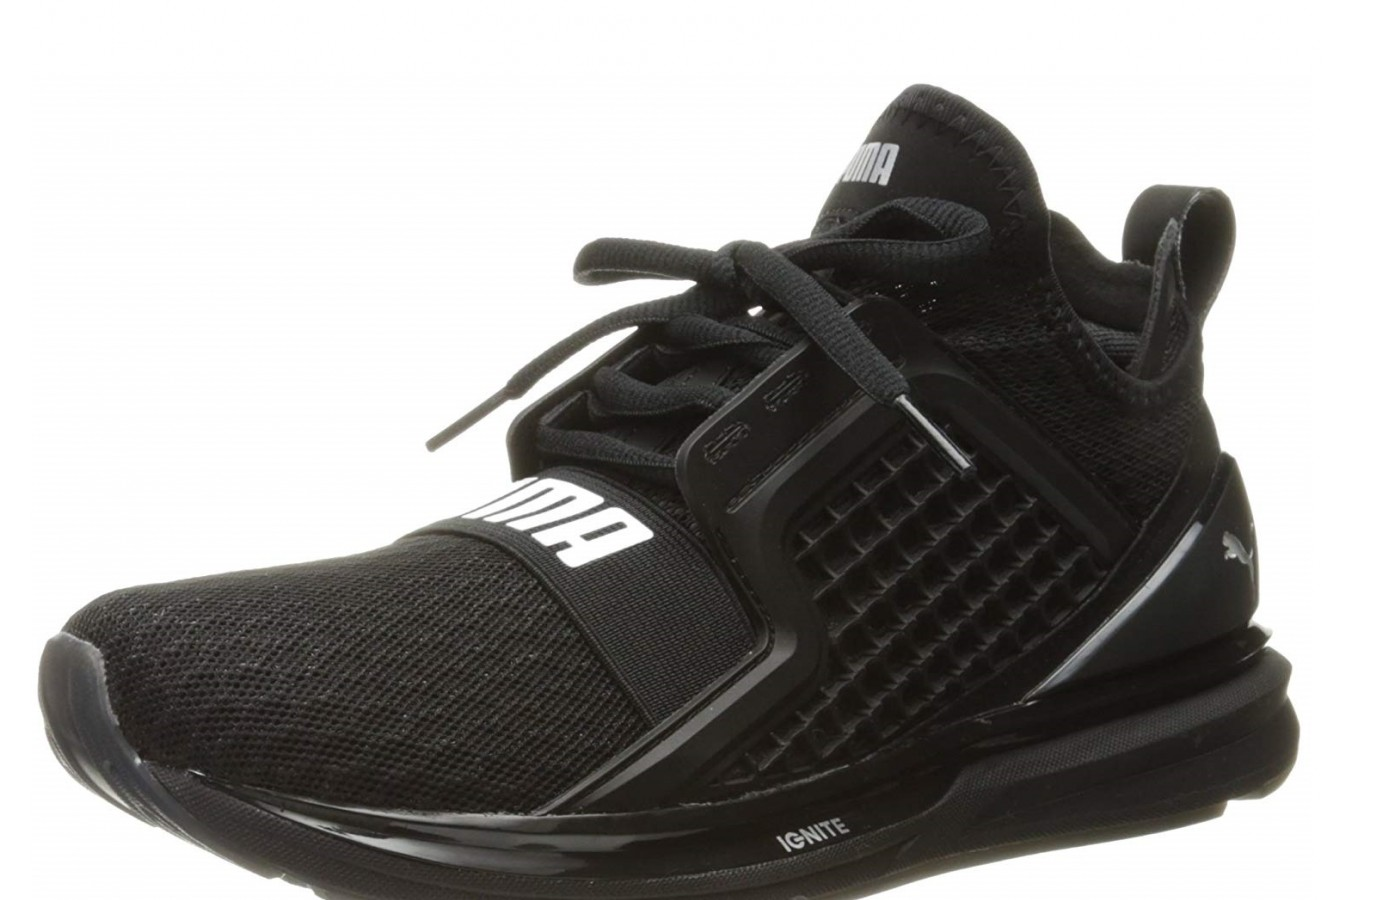 The Puma Ignite Limitless has a clam-shlle construction for a breathable fit.